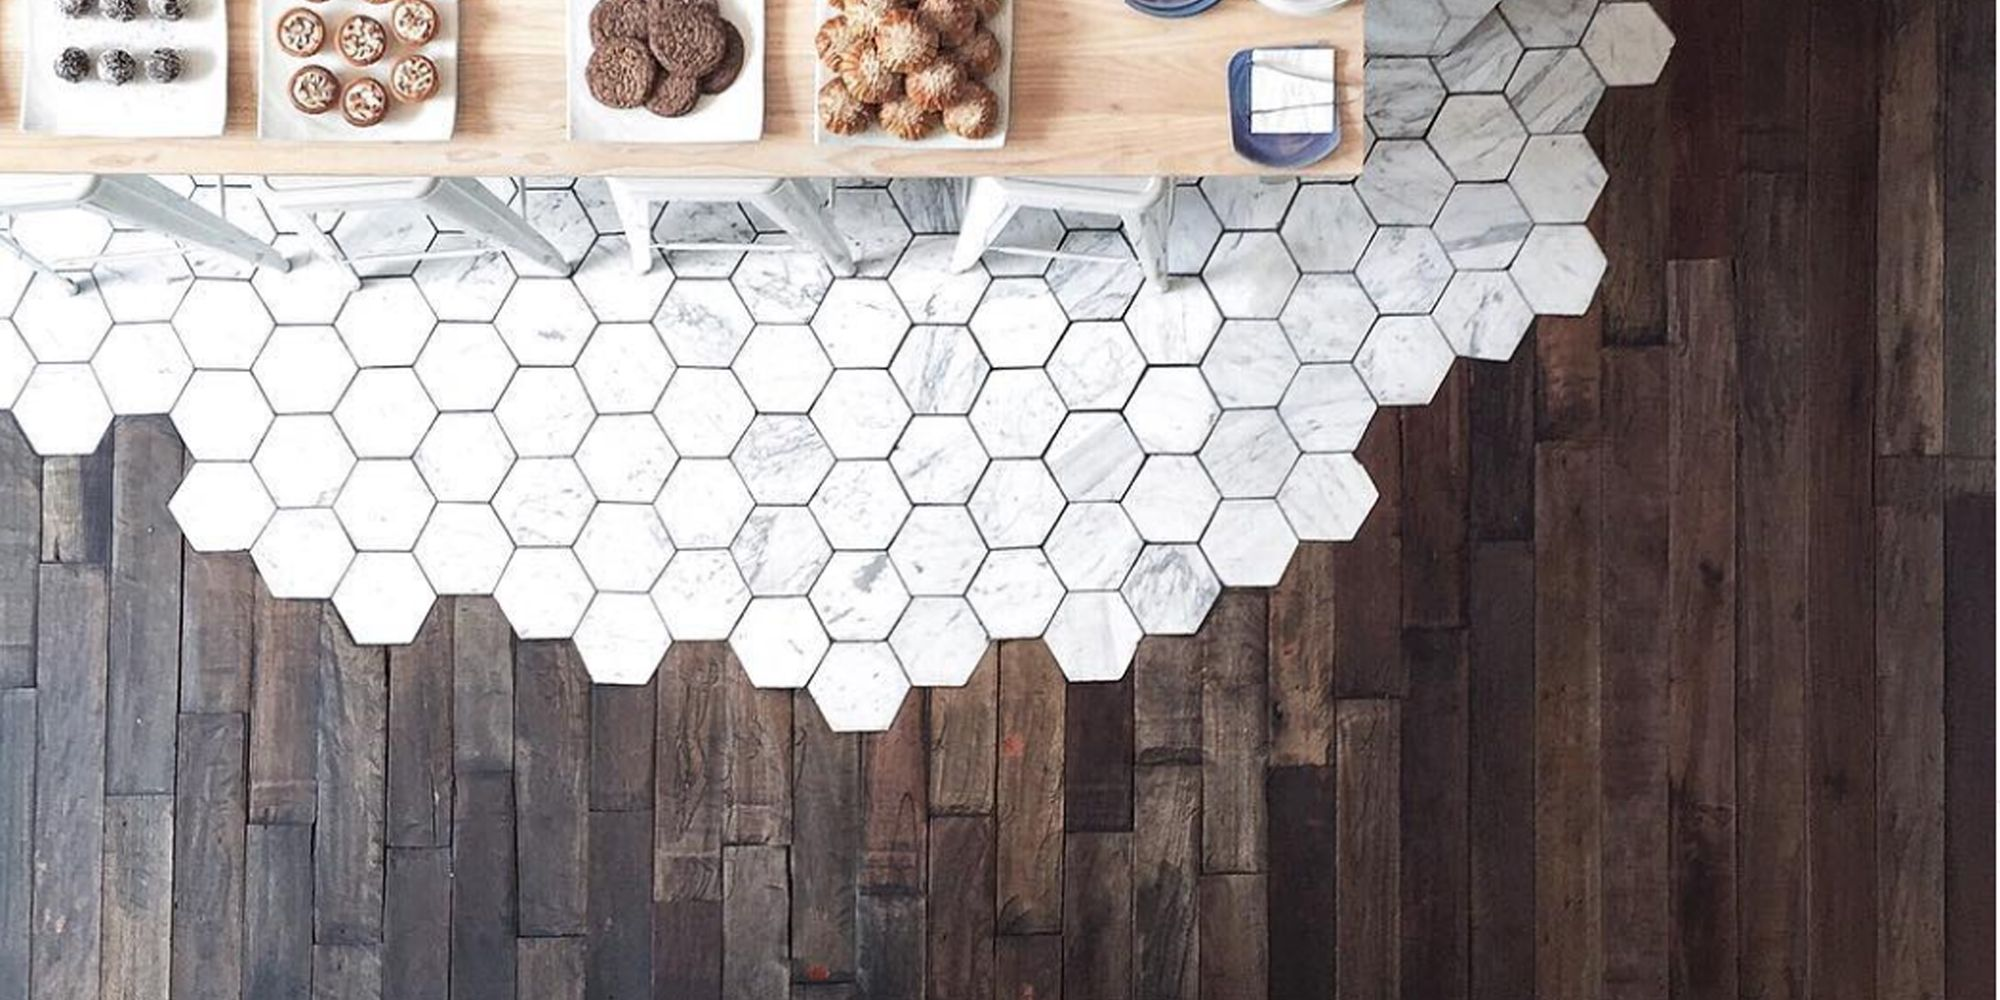 Hexagonal Tiles And Hardwood Make The Most Beautiful Flooring Combination Transitional